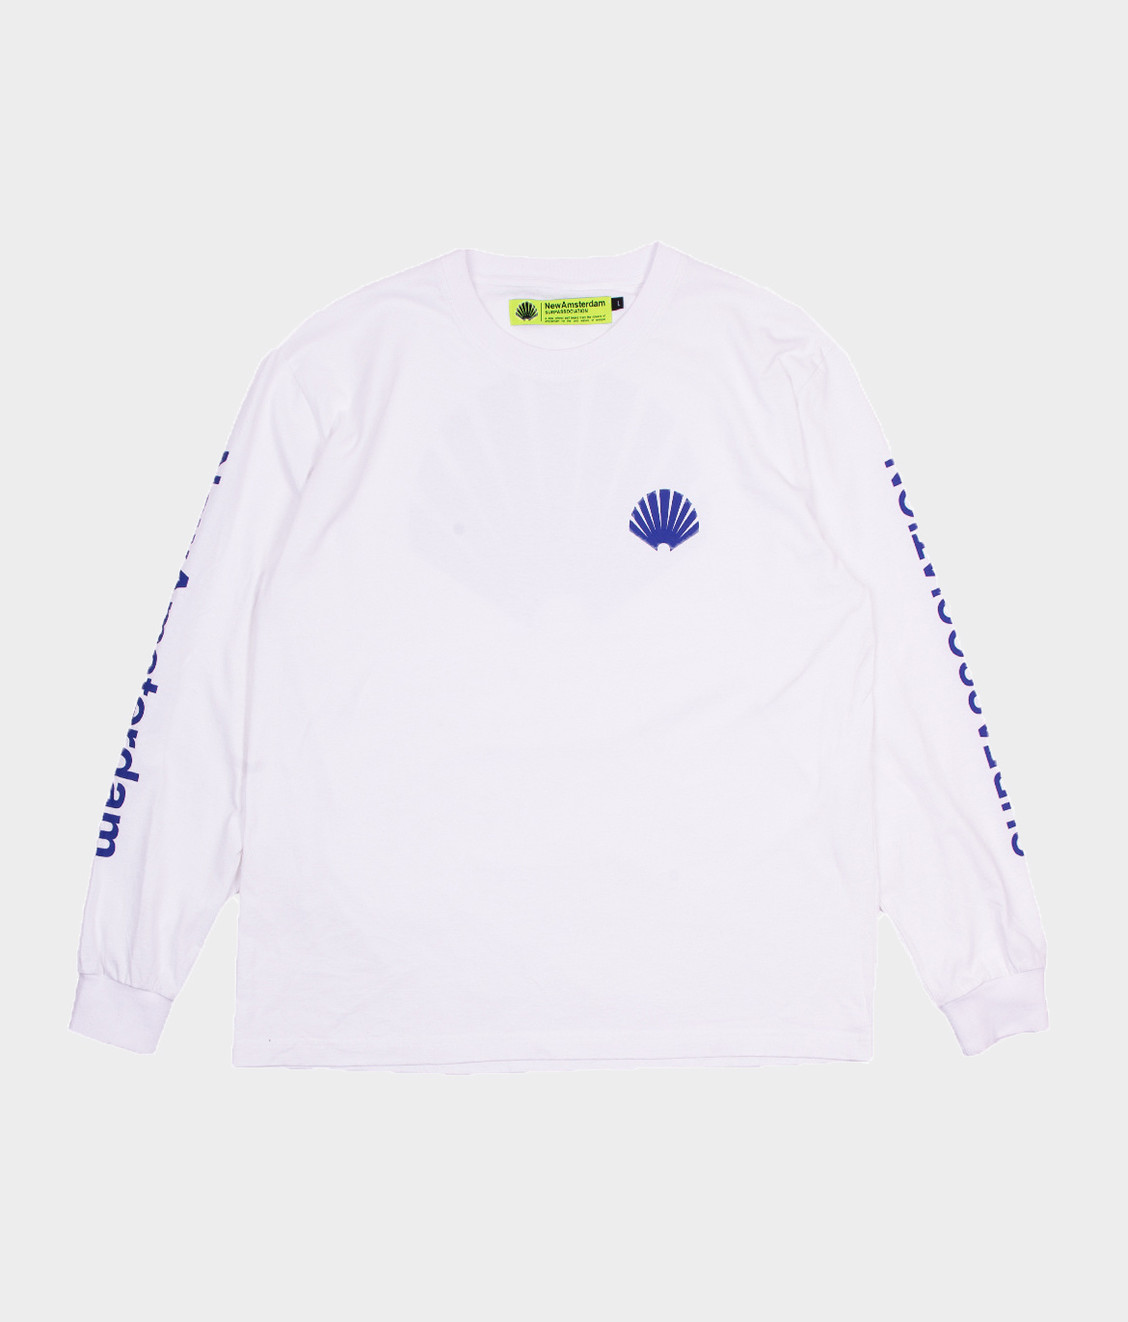 New Amsterdam New Amsterdam Logo Ls White Royal